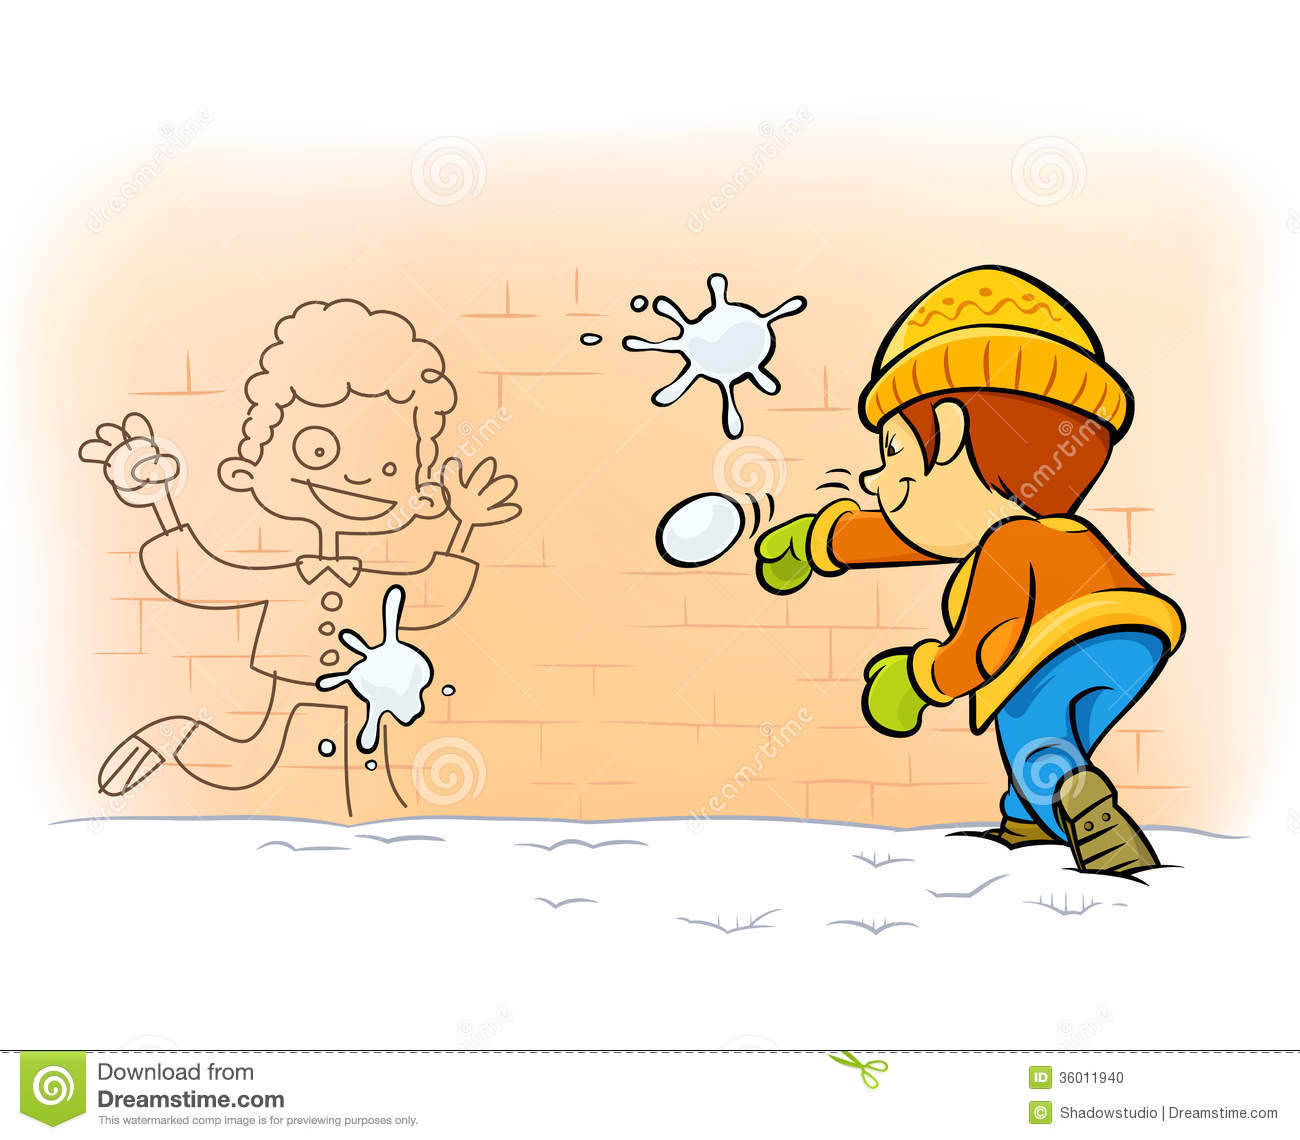 Snowball Fight Clipart Snowball Fight